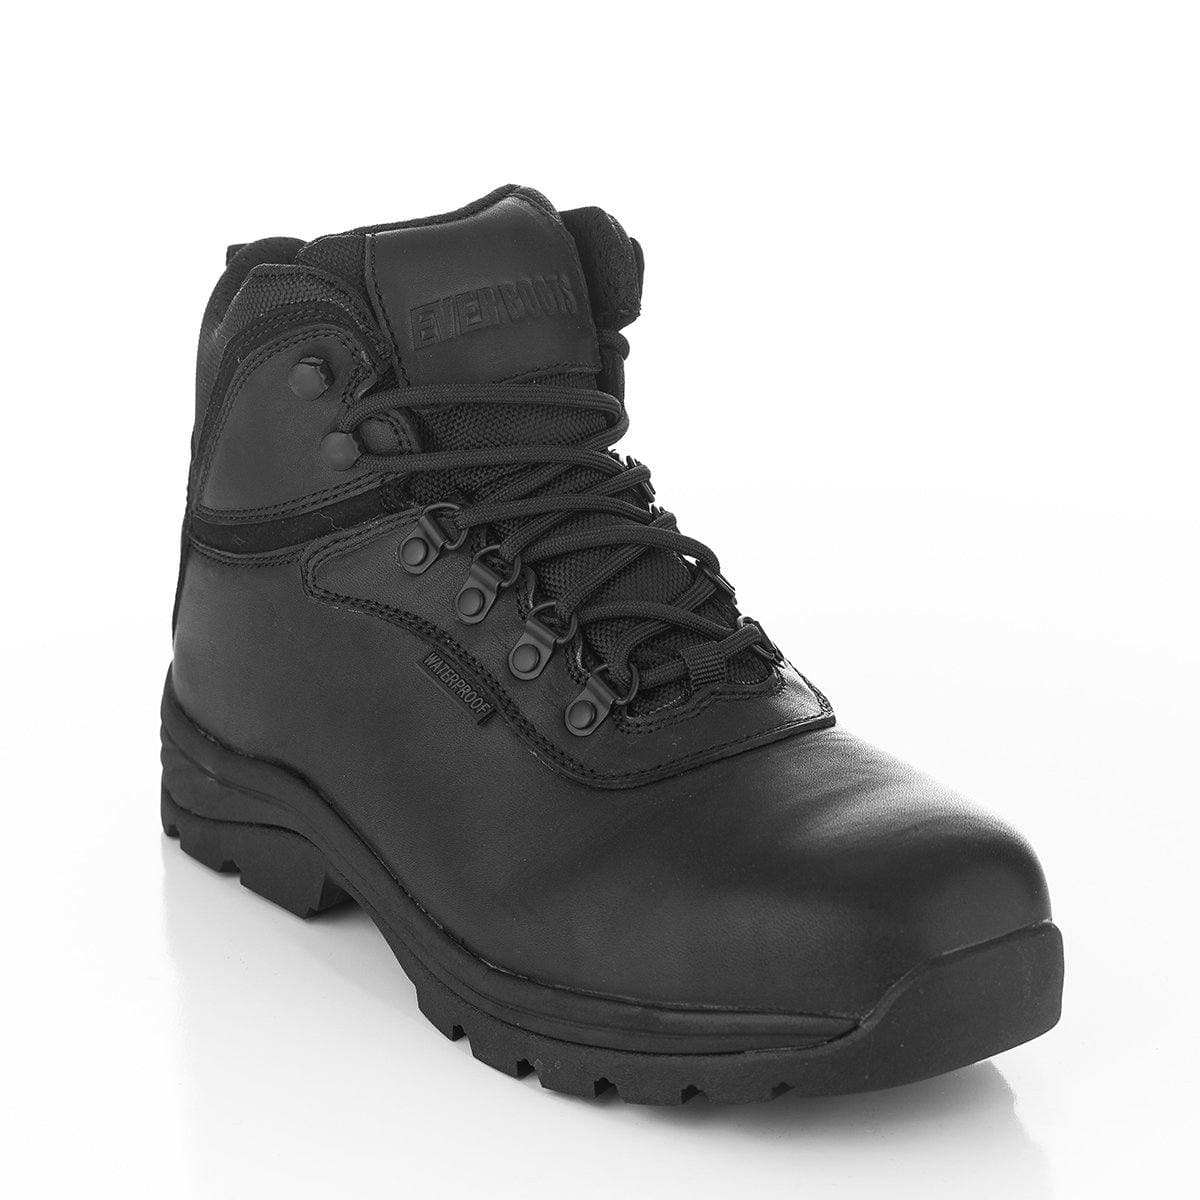 'Submarine' Steel Toe Waterproof Work Boot